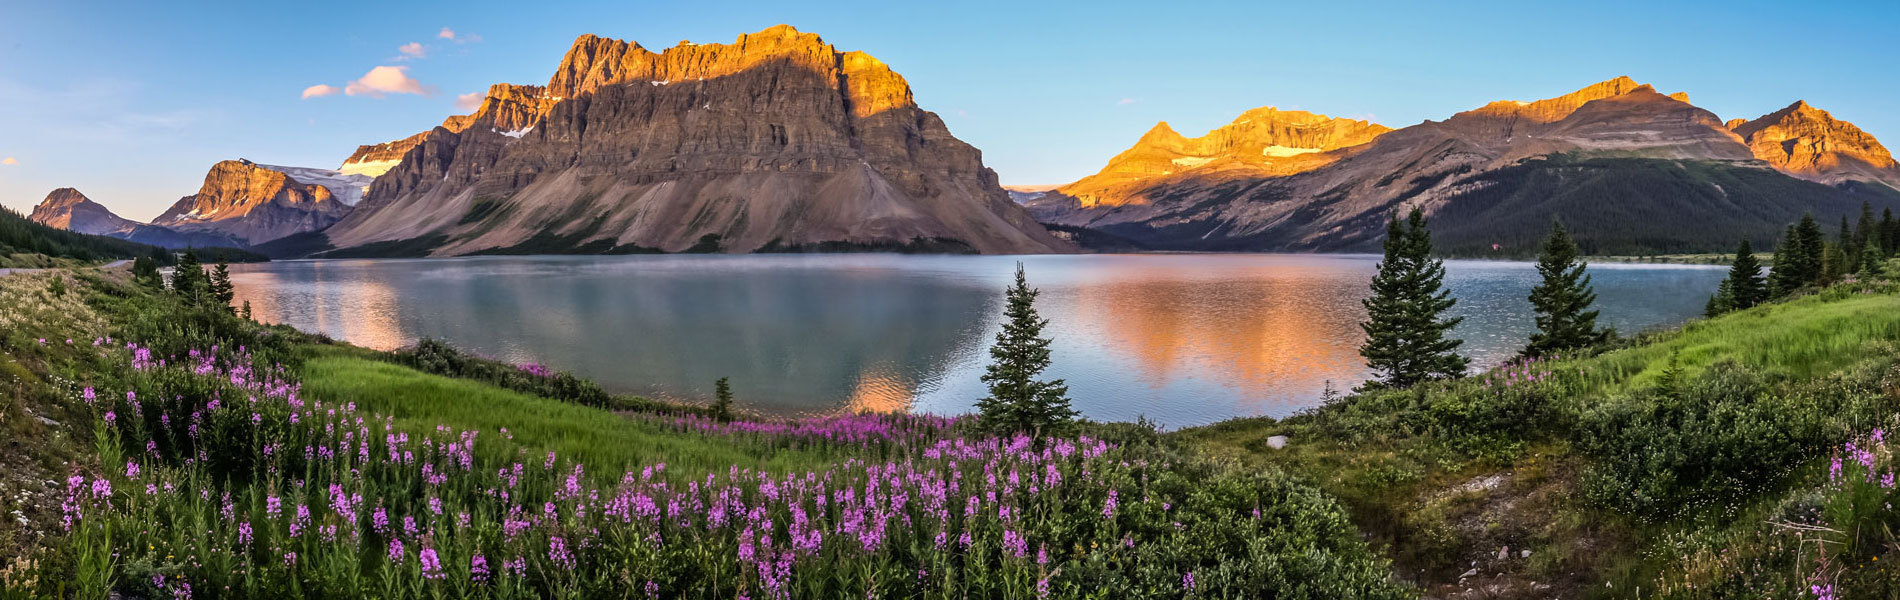 8 of the Most Beautiful National Parks in North America